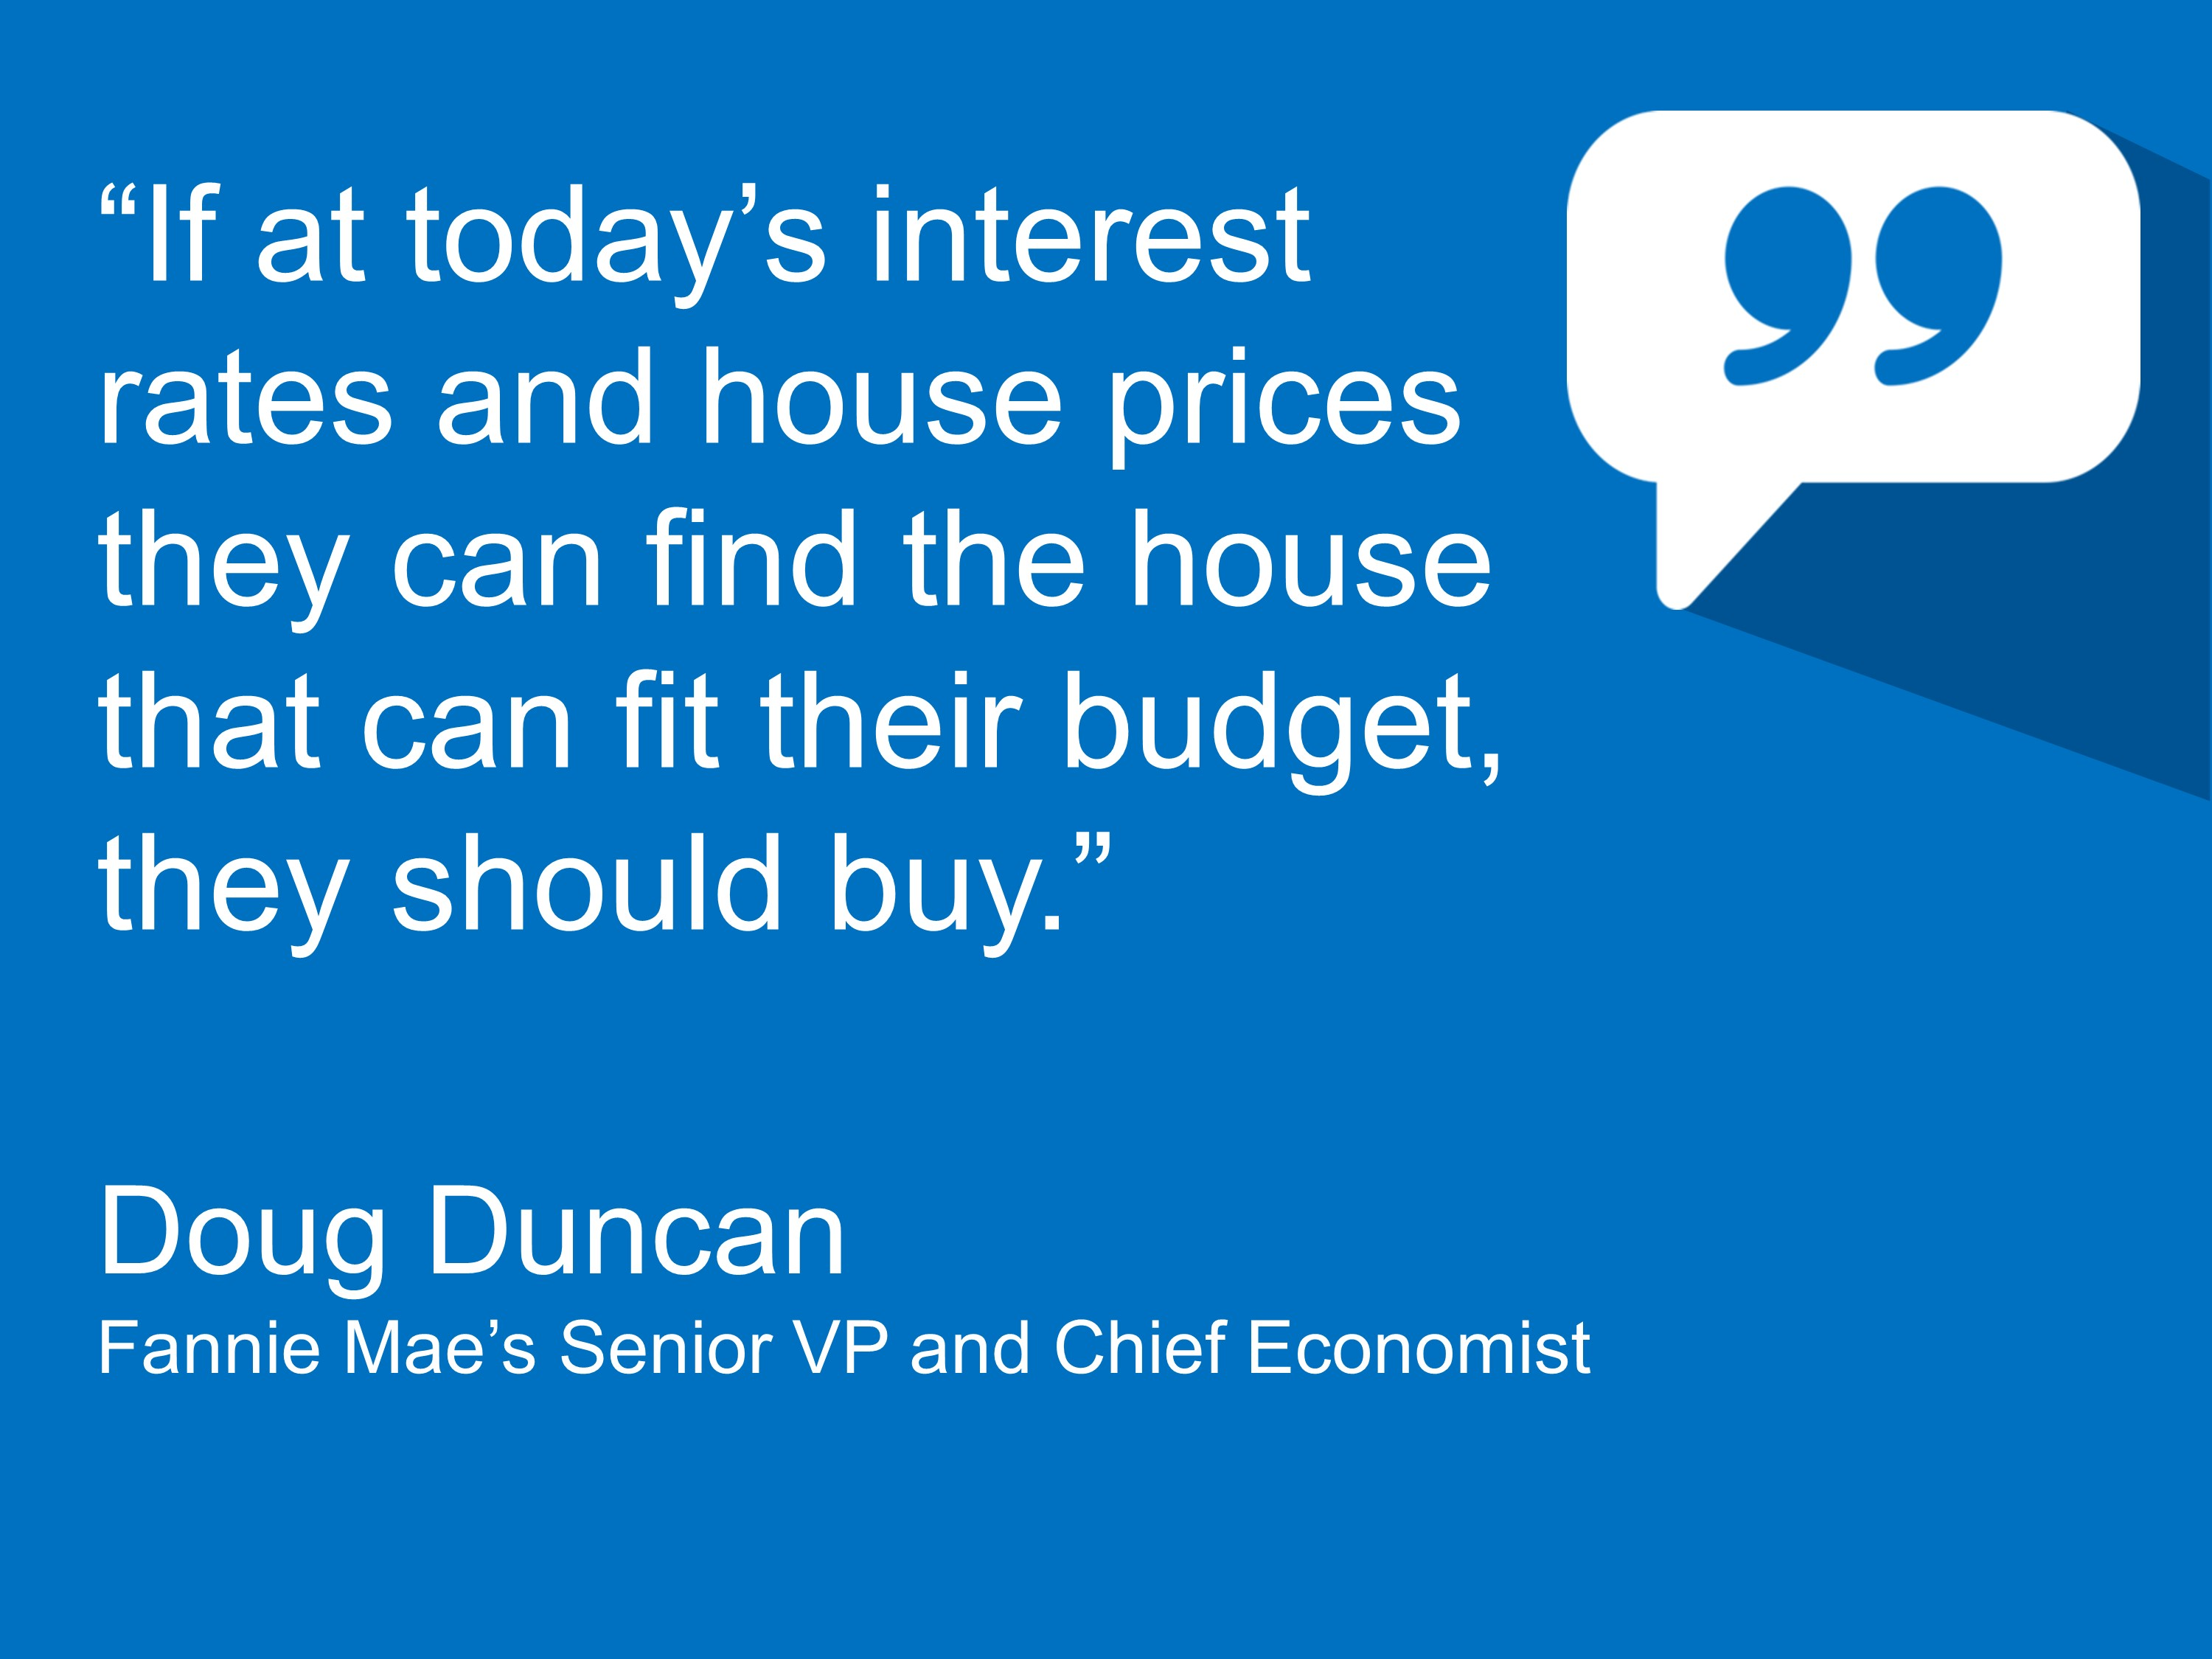 chief economist says you should buy a home if you ccan